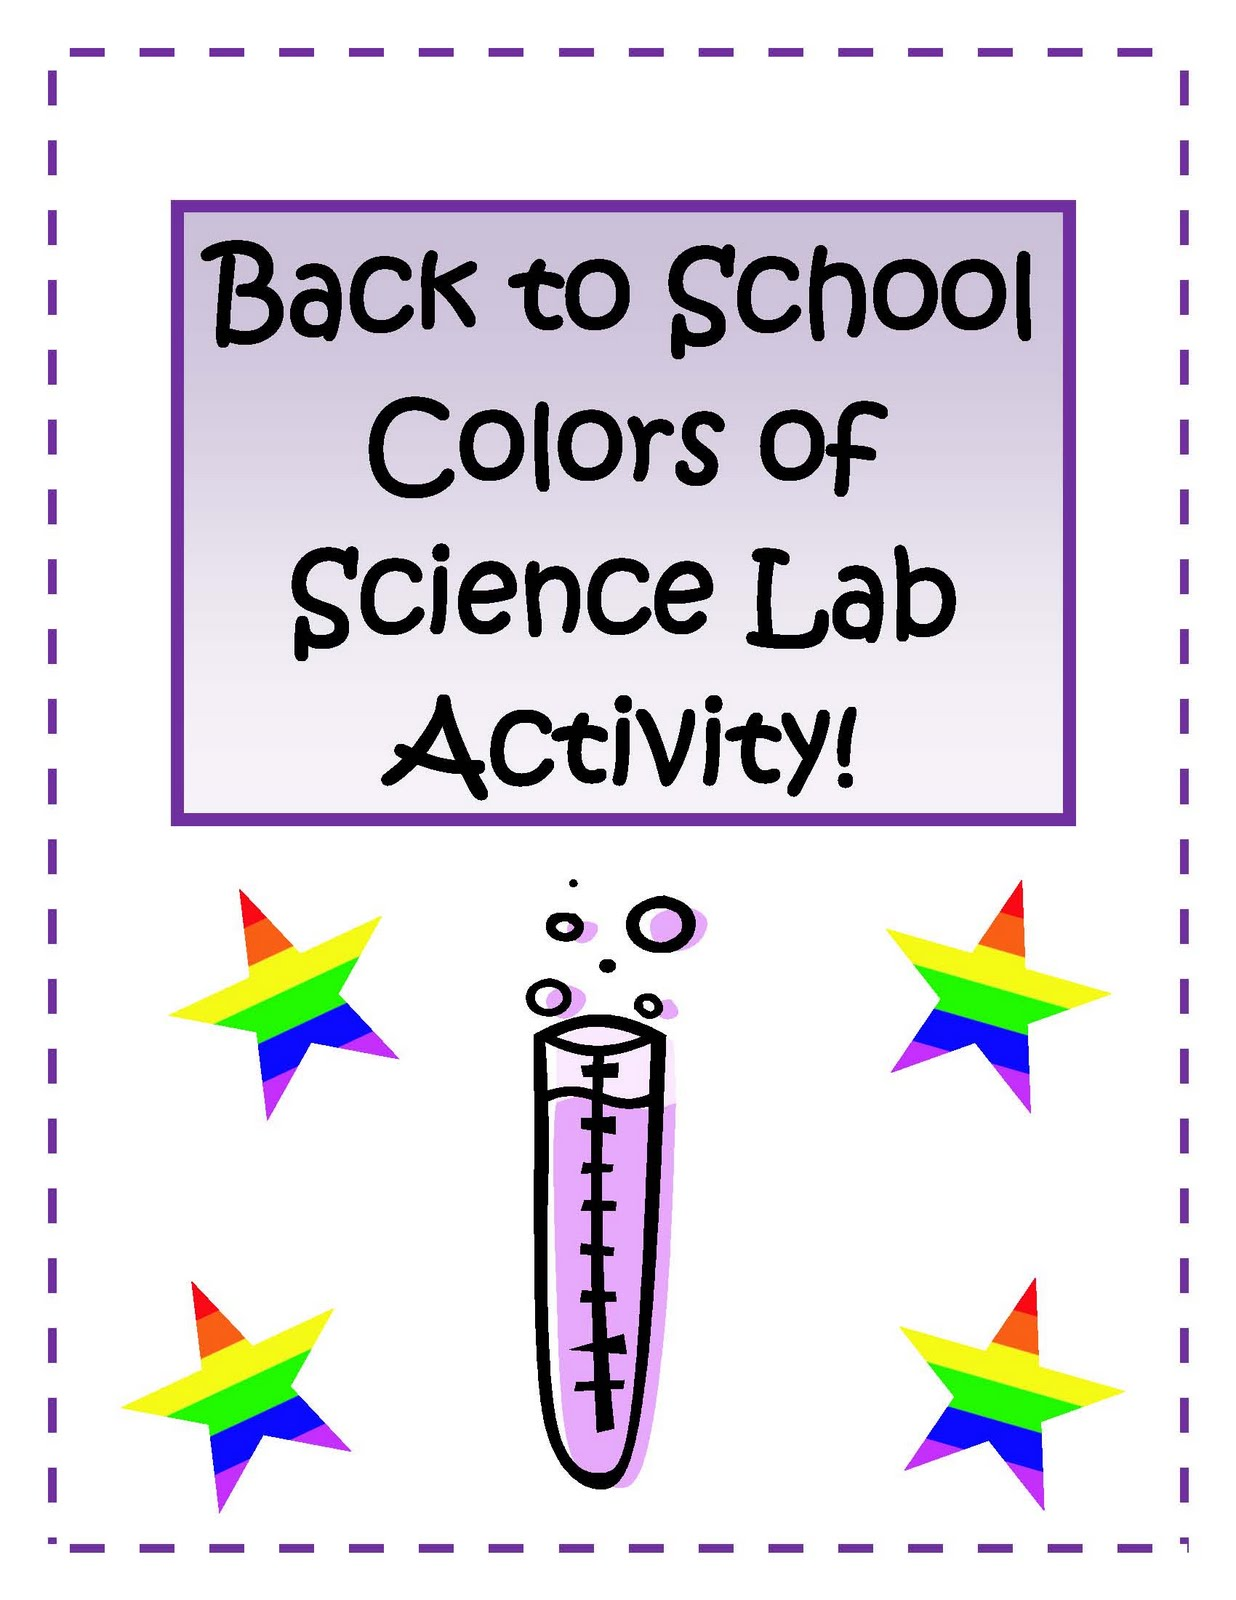 ... school colors of science lab activity fun html this science activity